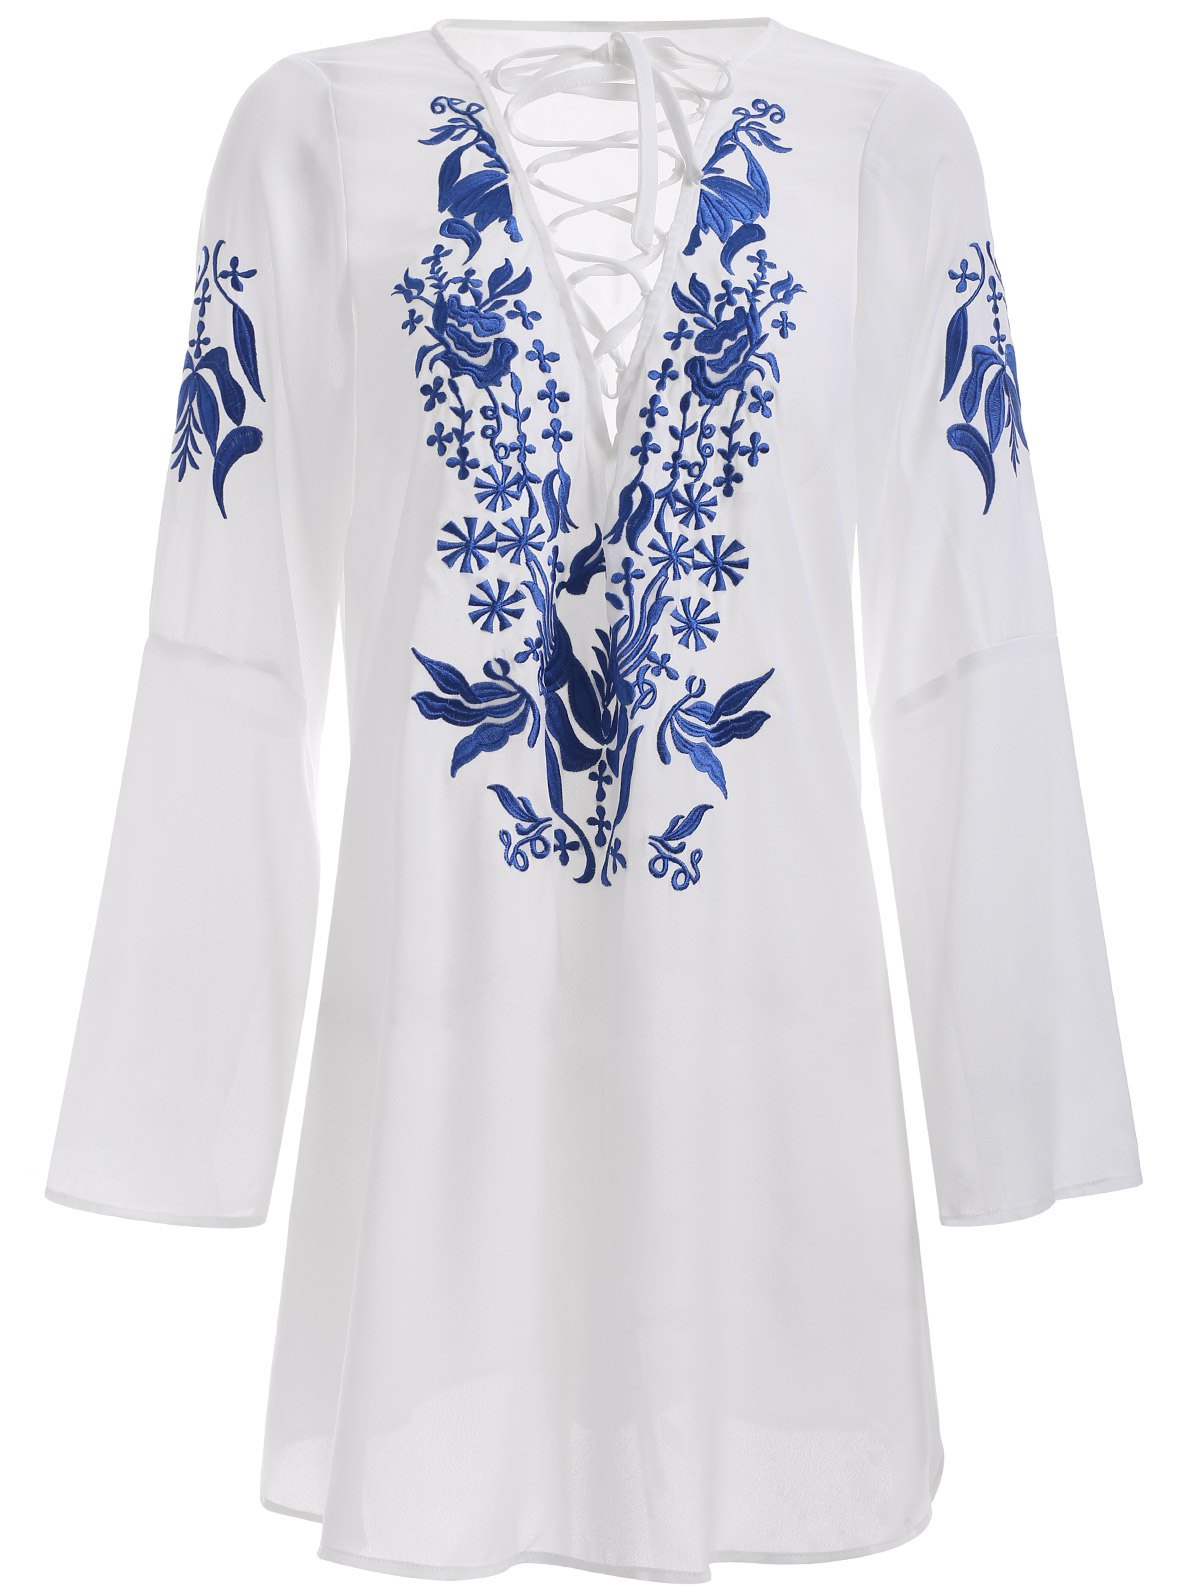 Brief Women's White Floral Print Lace-Up Dress - WHITE 2XL